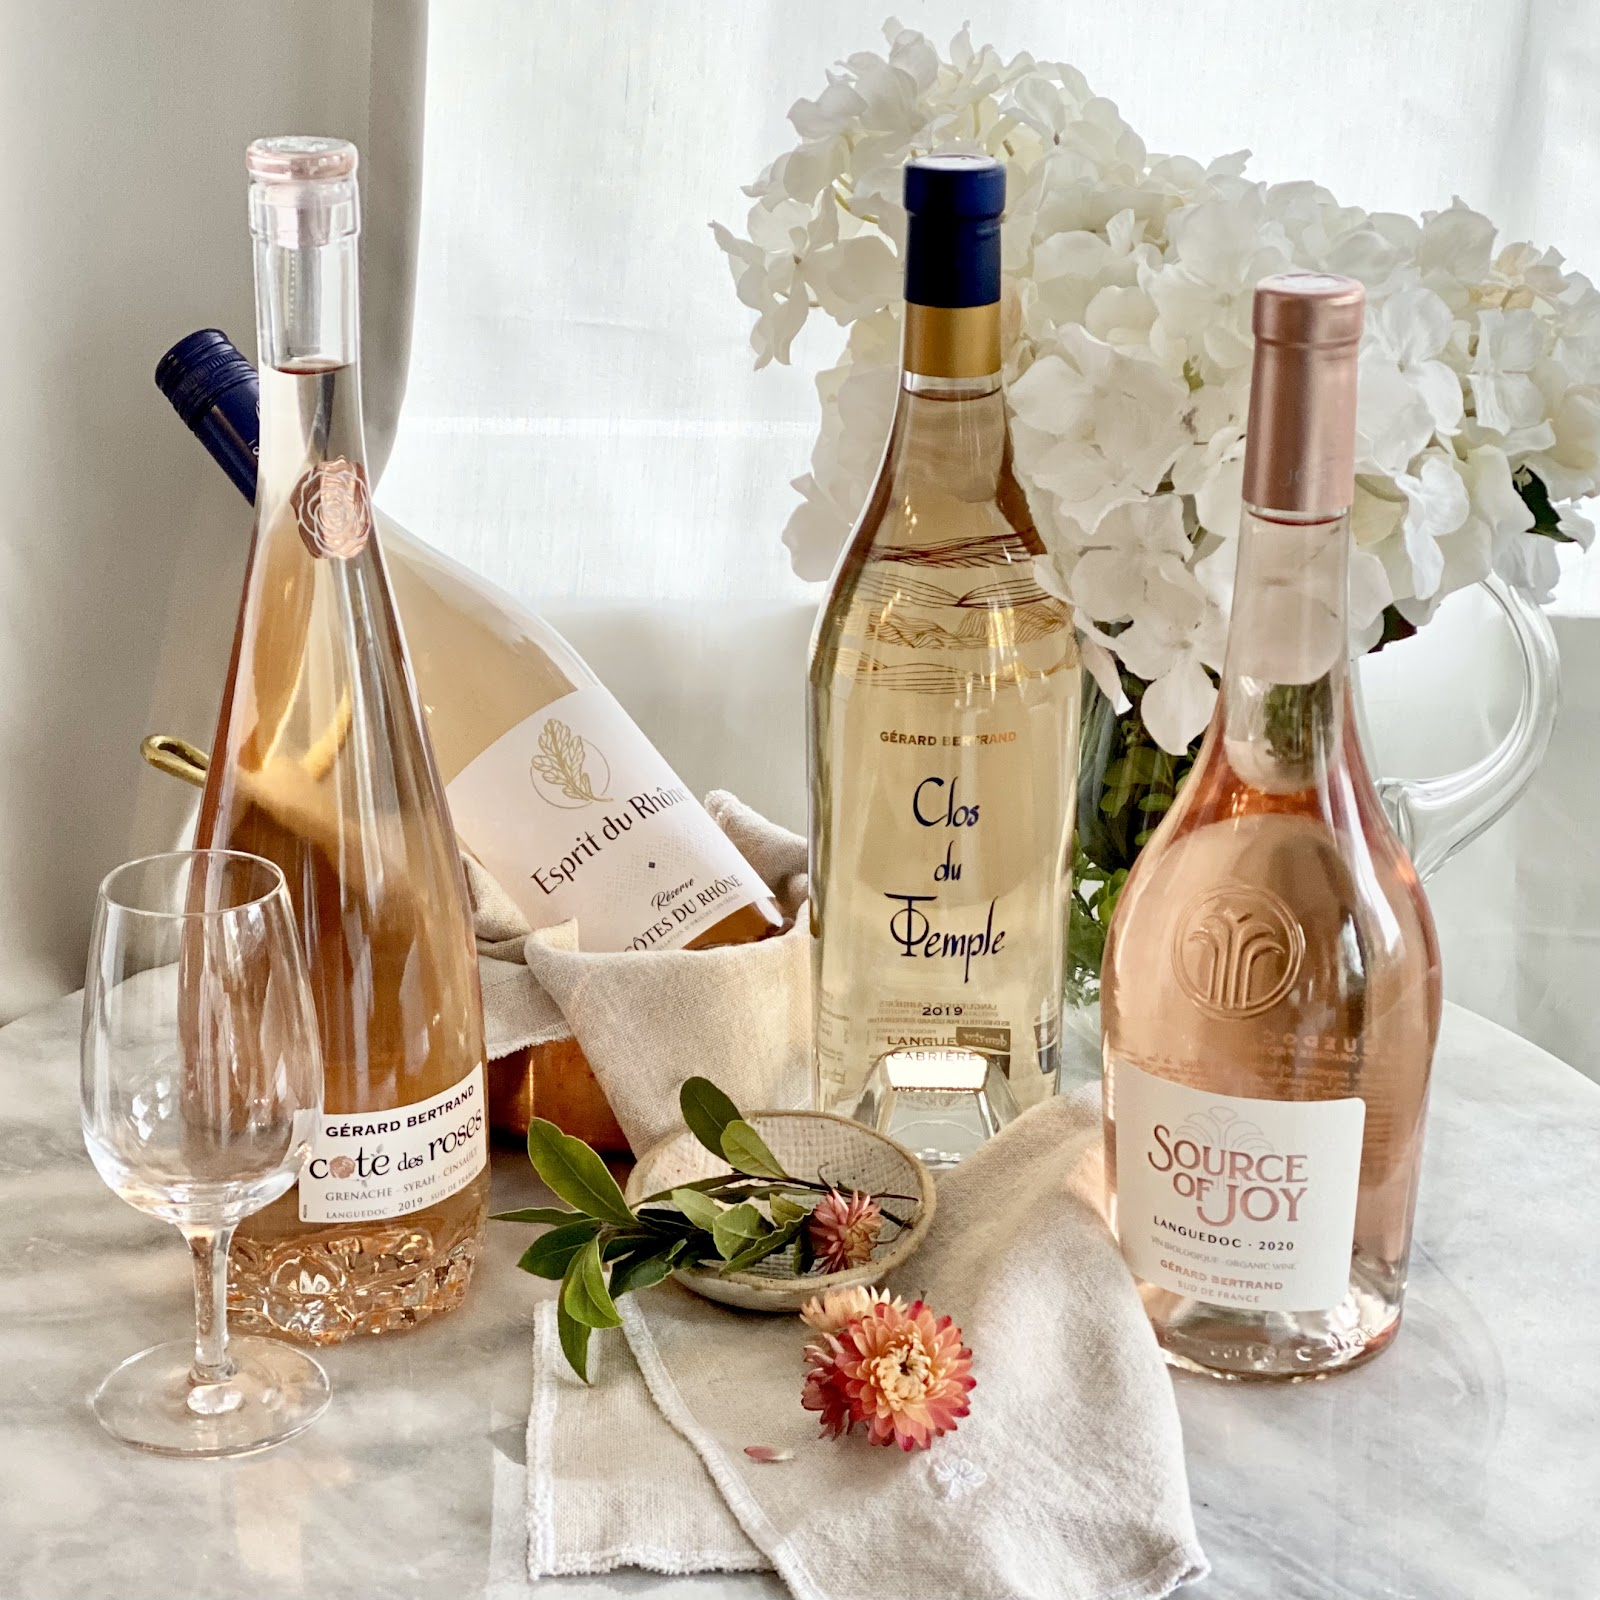 alison kent the home kitchen 5 week series blog on rose wine with barb wild of the good wine gal rose wines selection featuring cote des roses esprit du thone clos de temple and source of joy